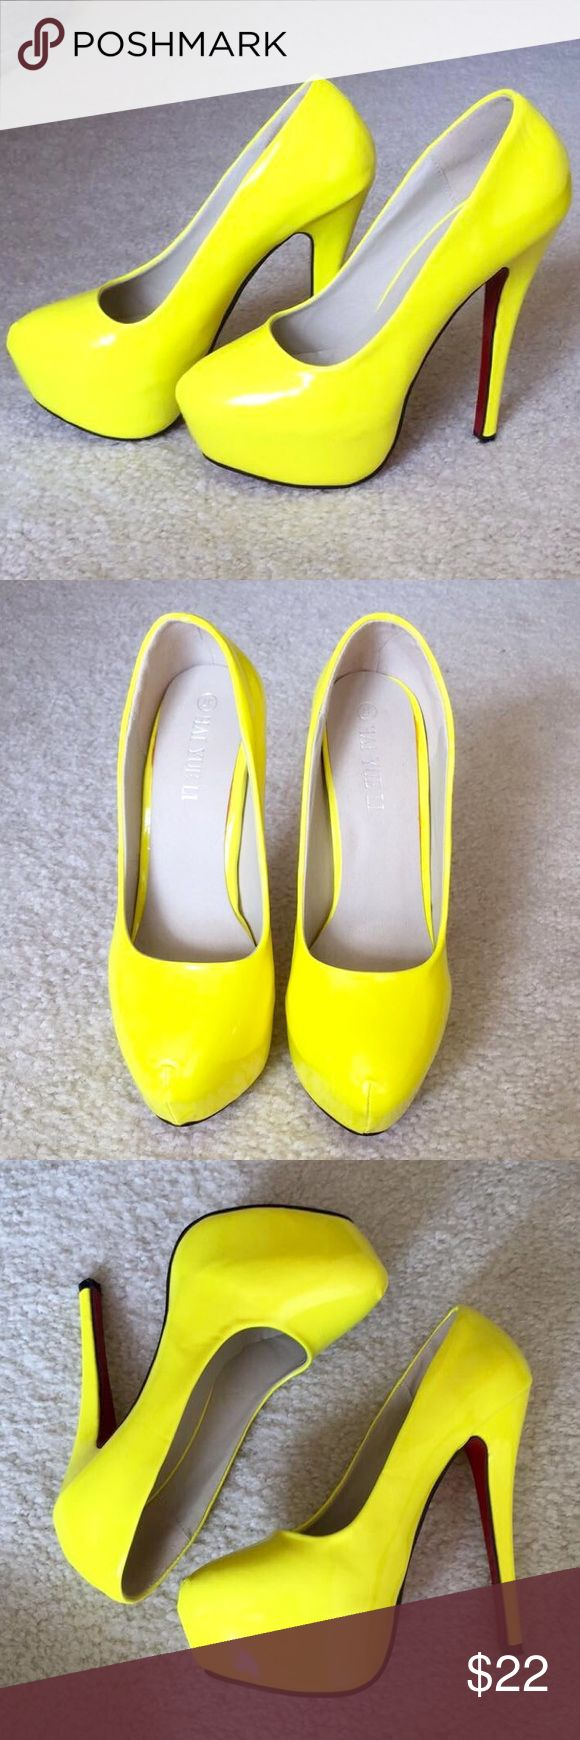 Neon pump size 37 Neon yellow pump with red bottom. Size 37. Never worn! Not from listed brand!! Nasty Gal Shoes Platforms